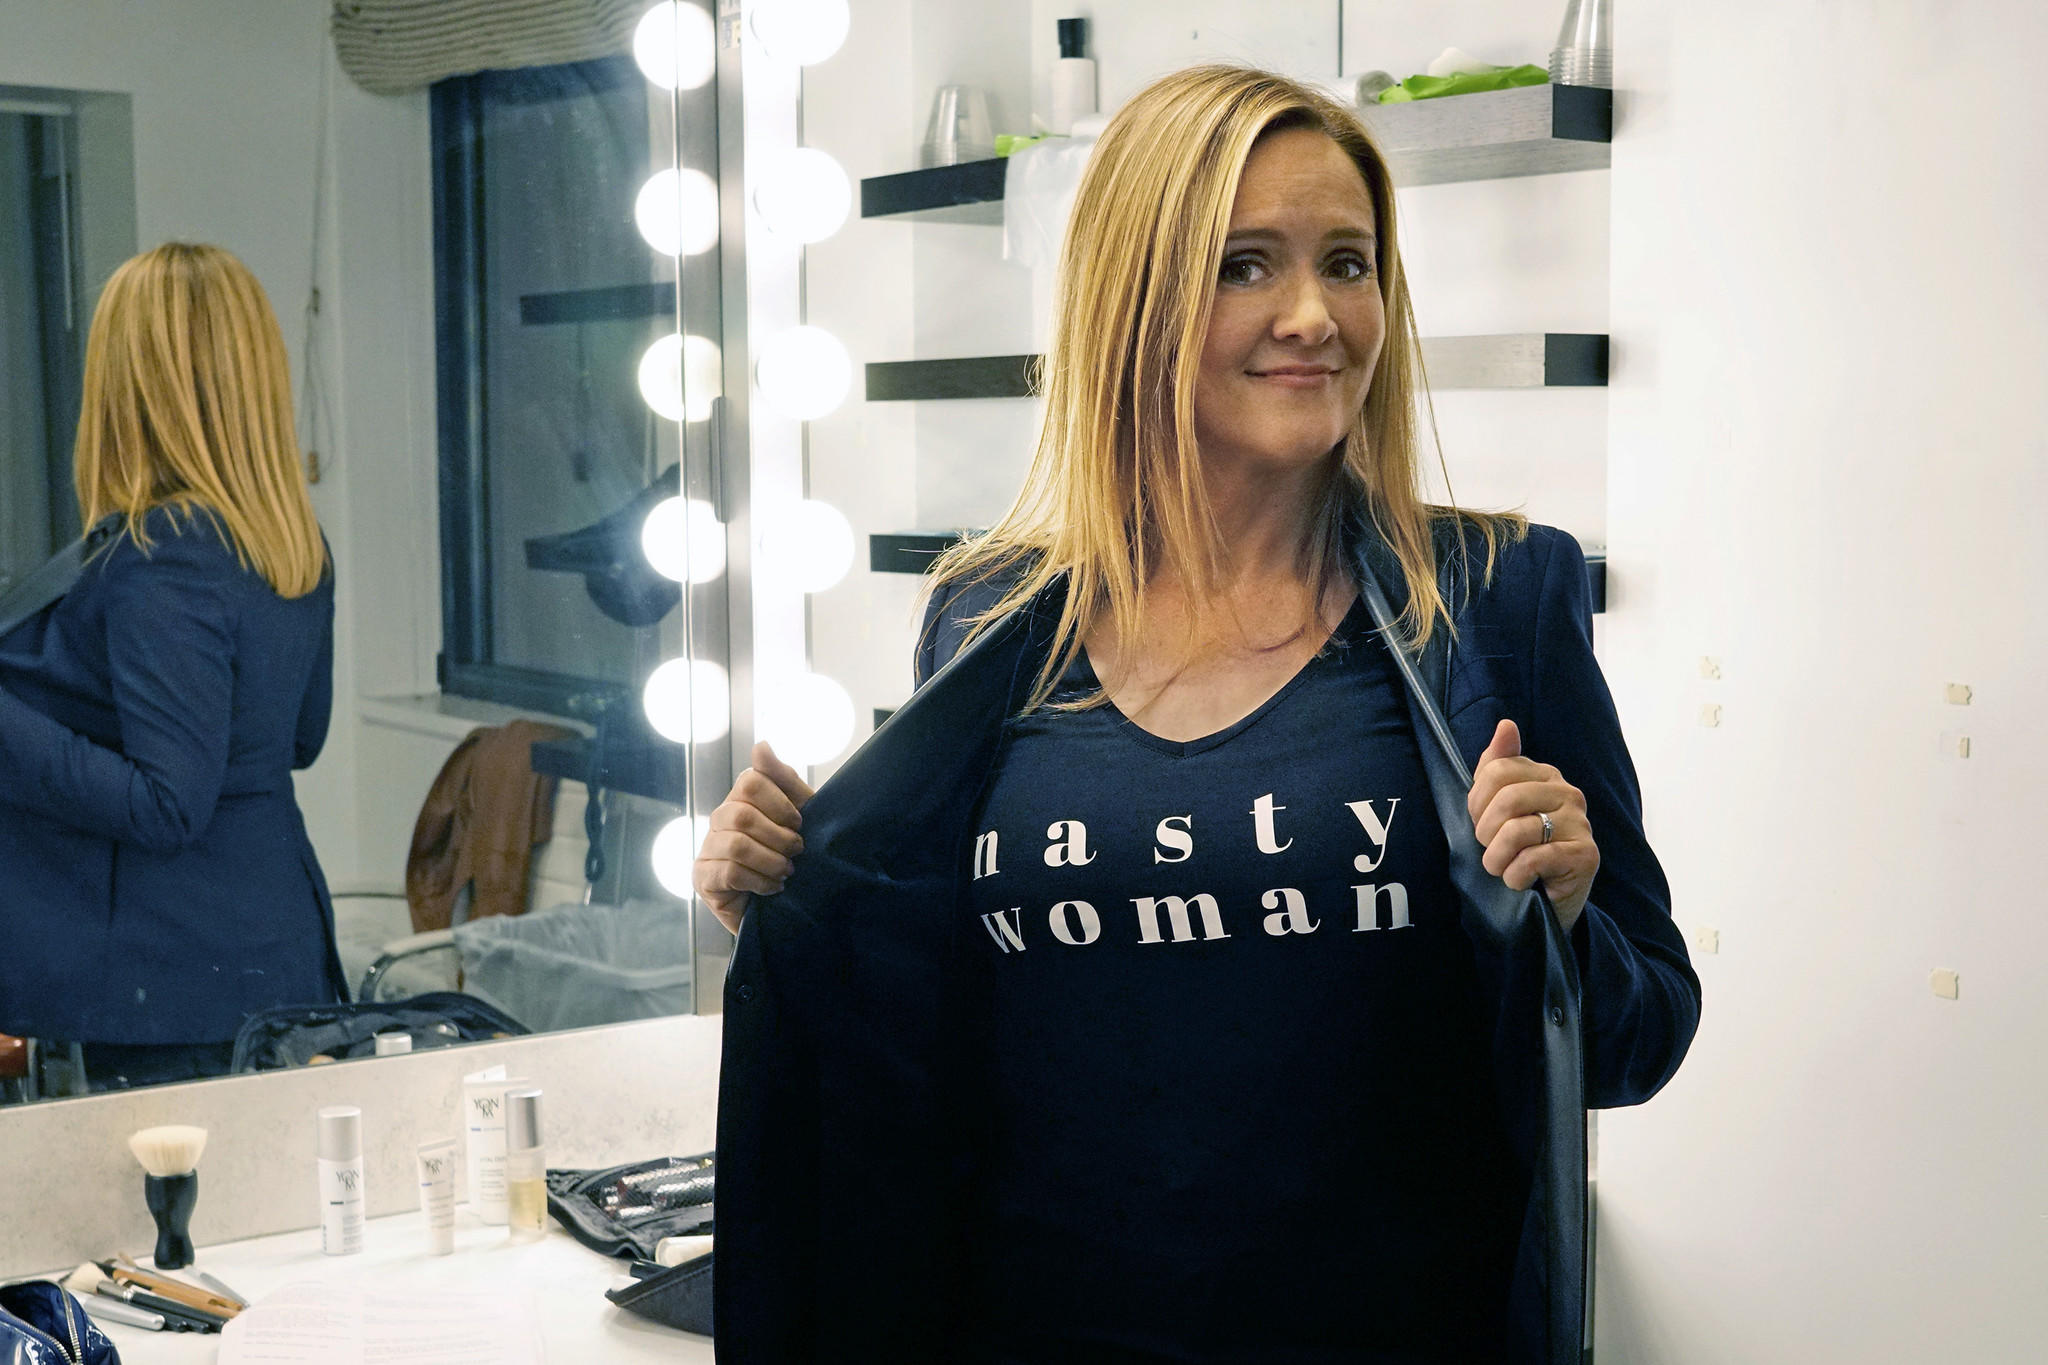 """Samantha Bee slammed Trump's Voter Integrity Commission on """"Full Frontal With Samantha Bee."""" (Myles Aronowitz / TBS)"""